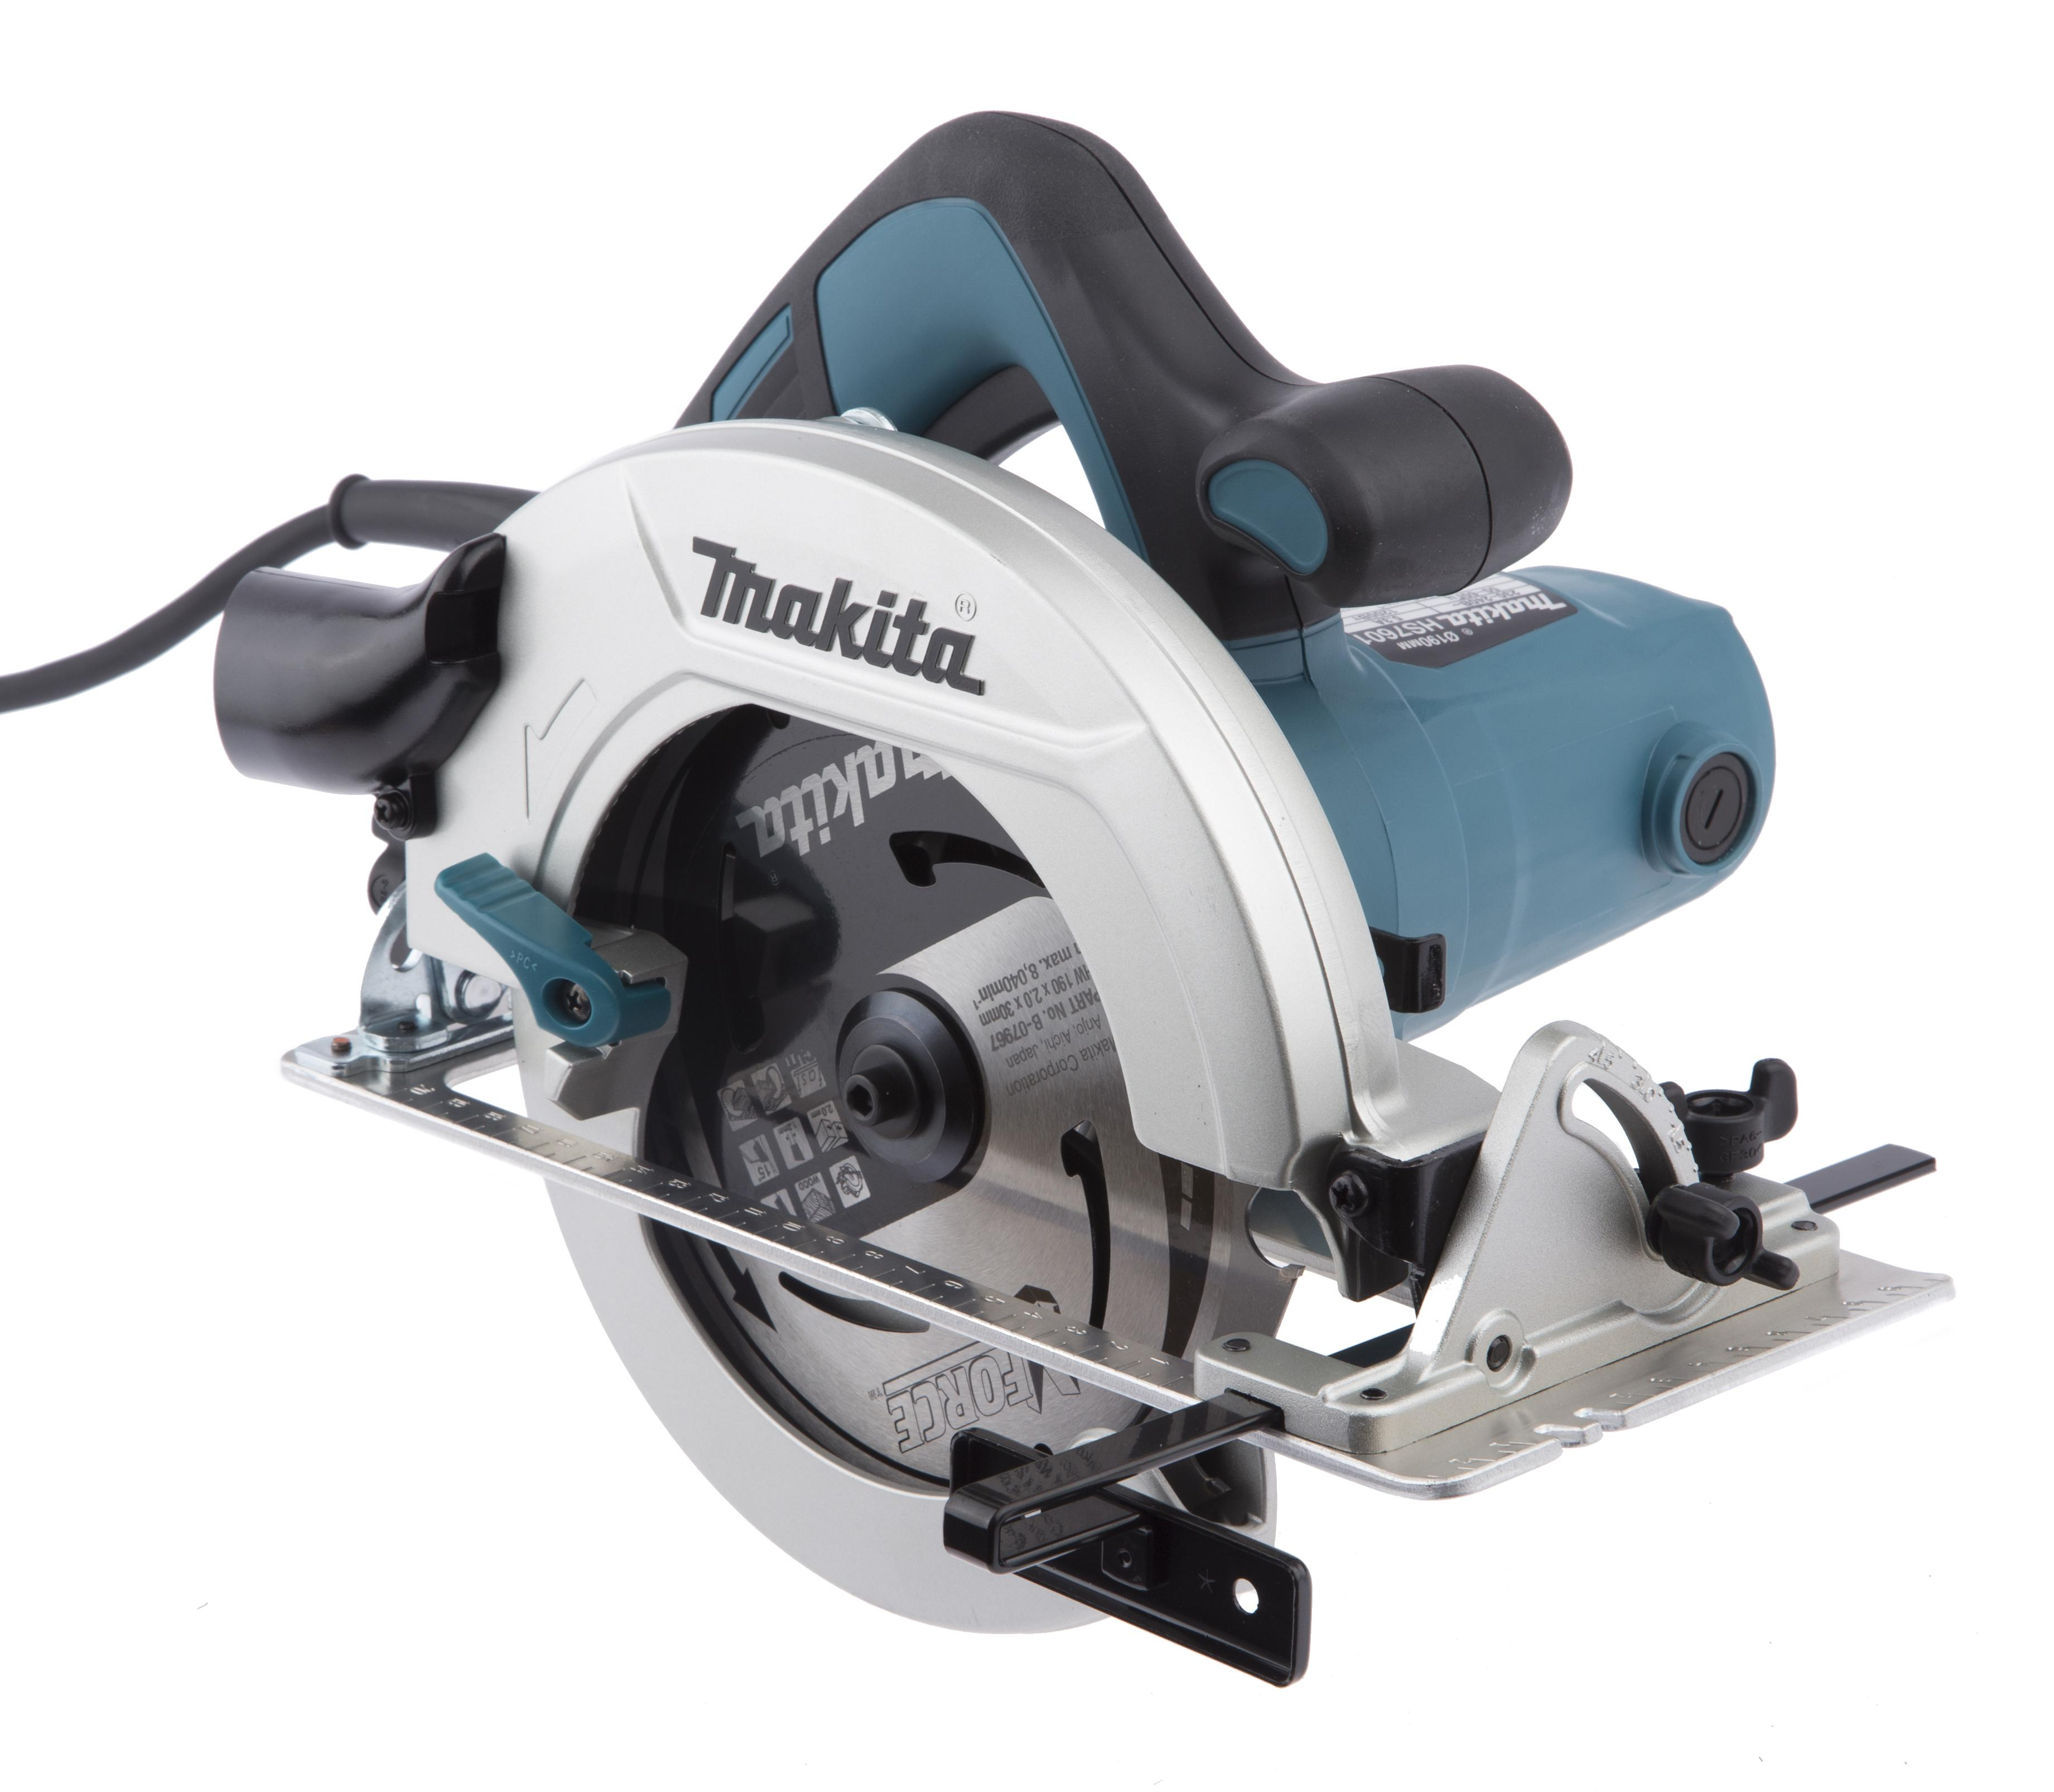 Пила циркулярная Makita Hs7601k циркулярная пила patriot cs186 190301605